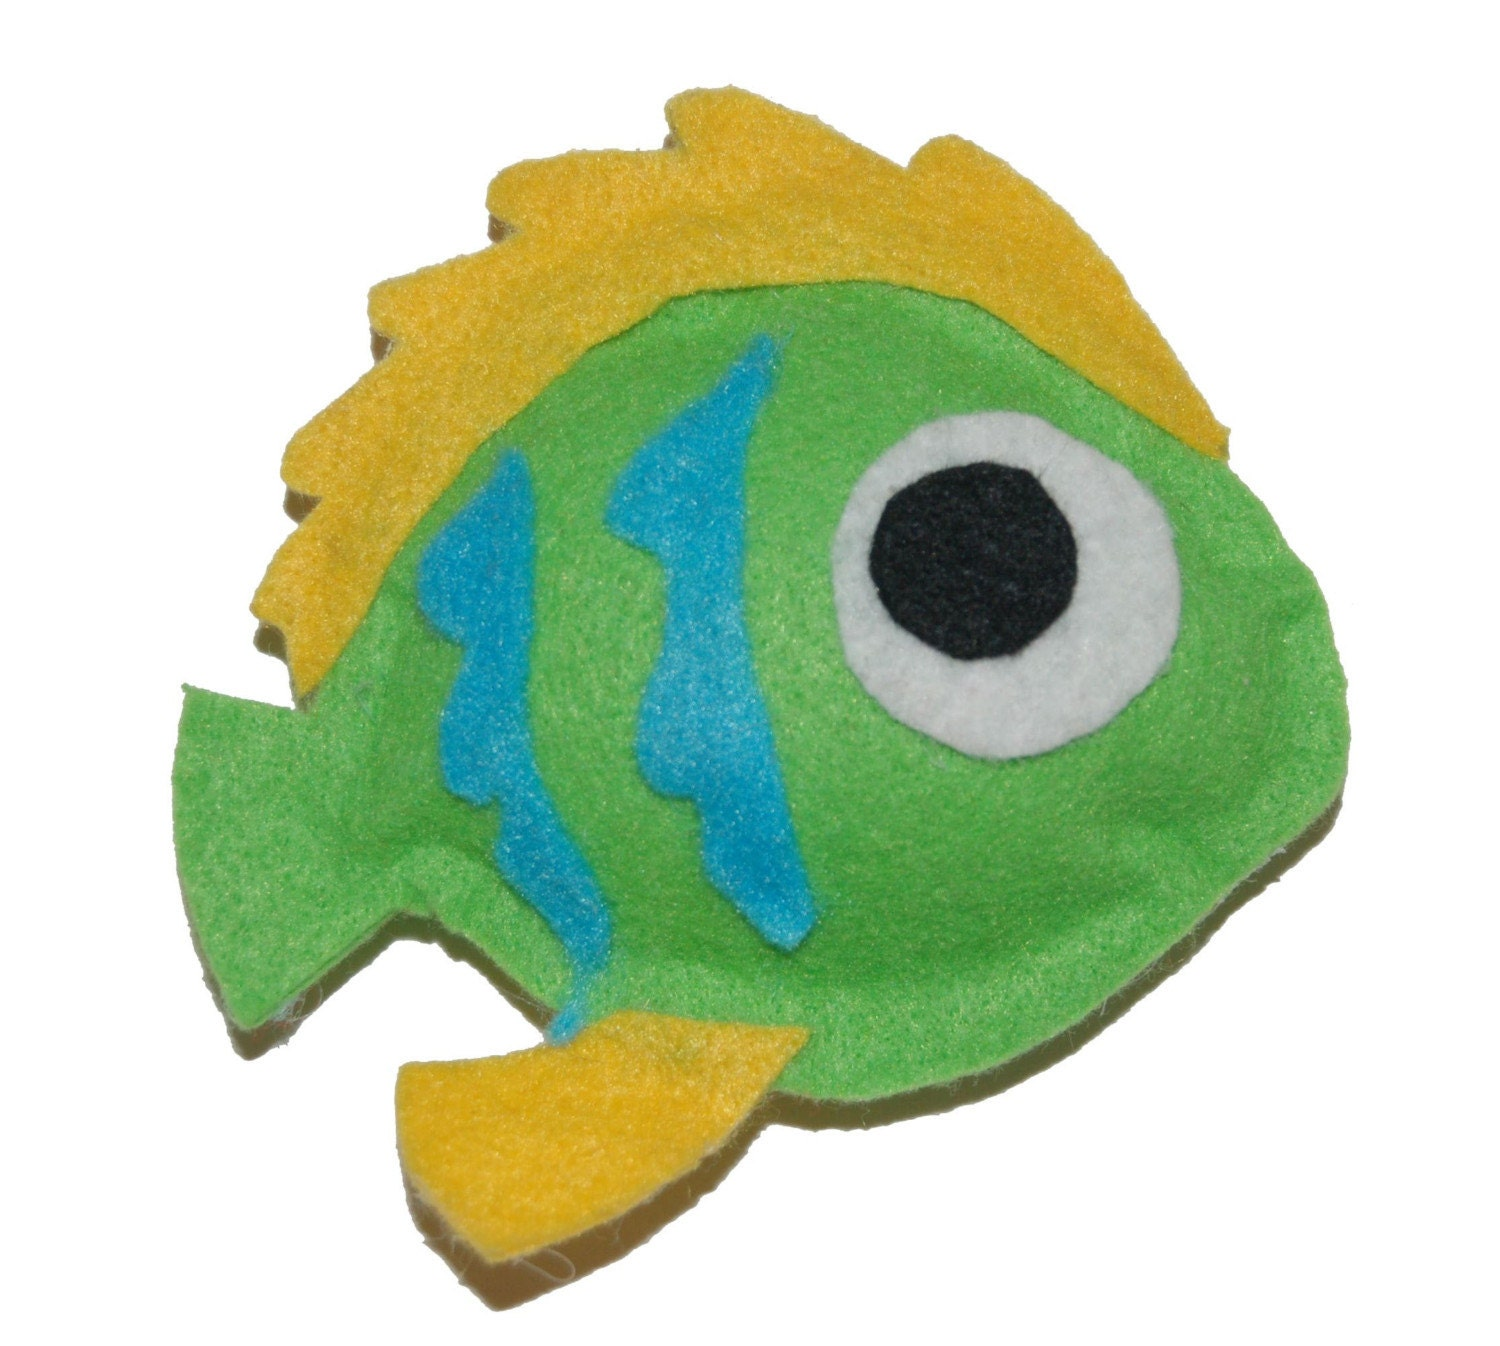 Items similar to green fish cat toy on etsy for Fish cat toy